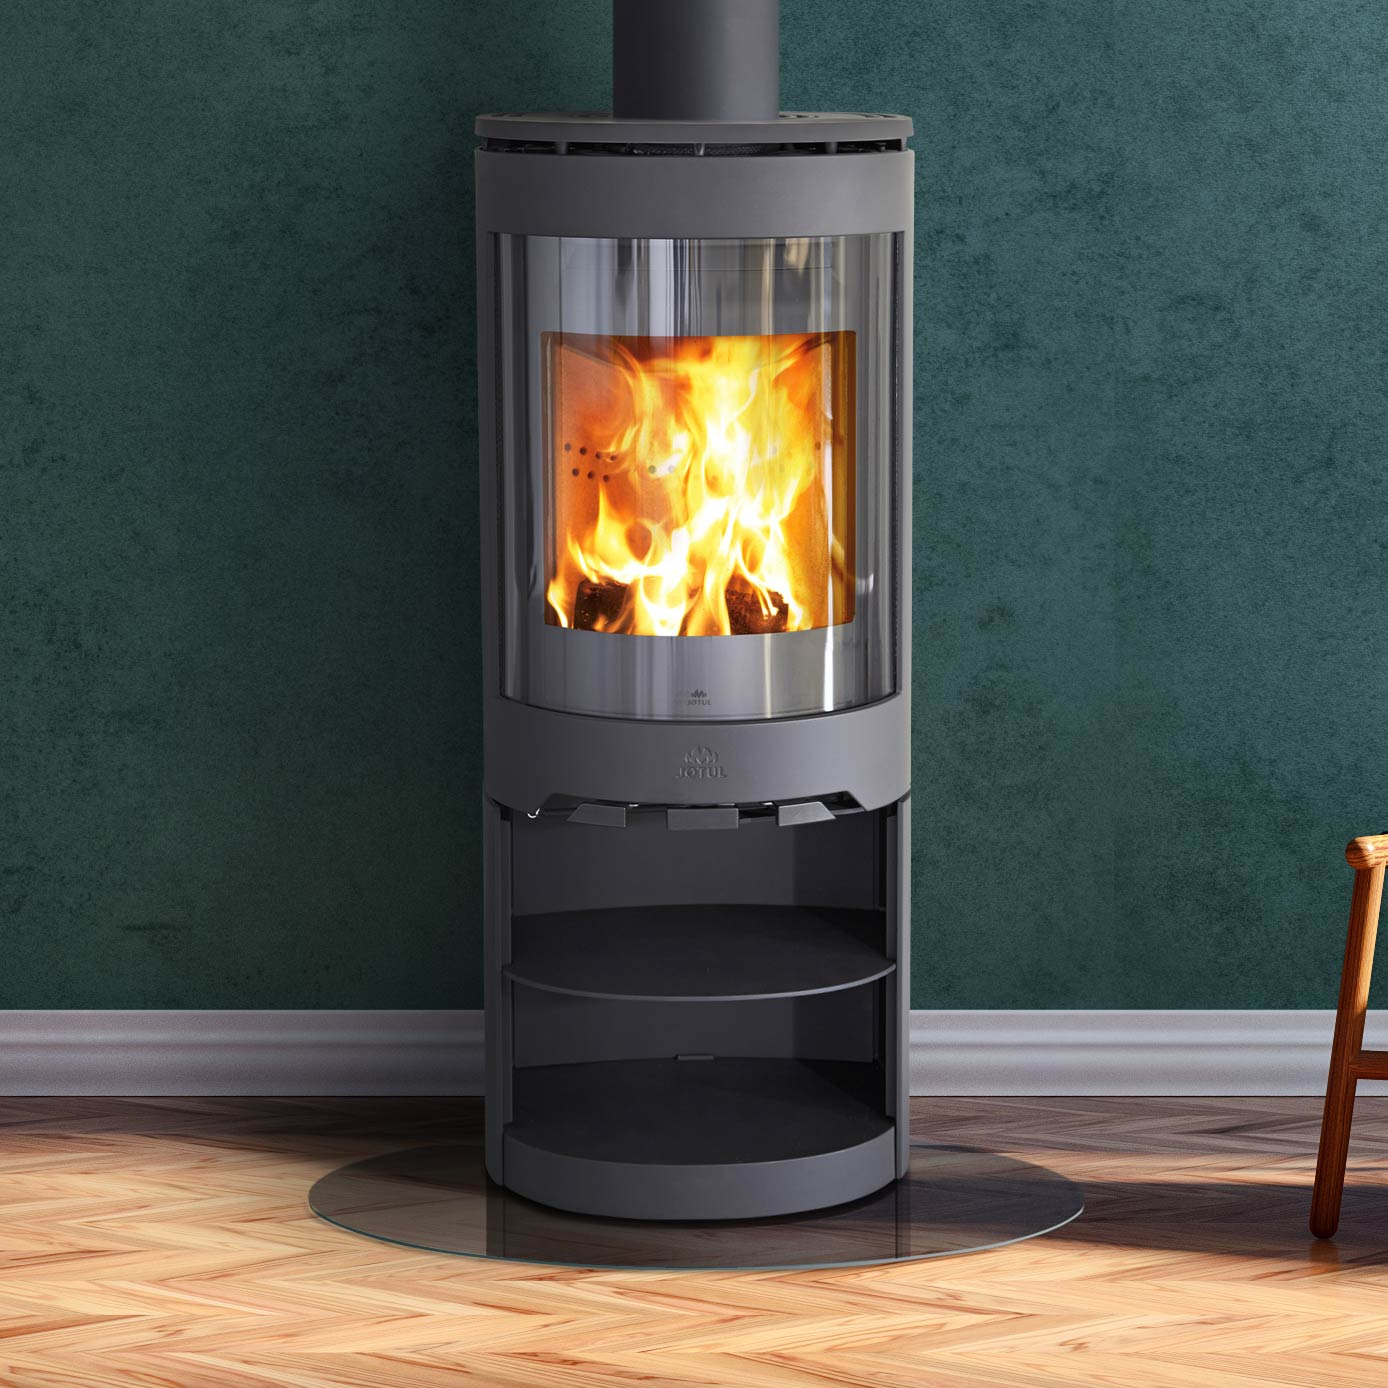 photo of wood stove